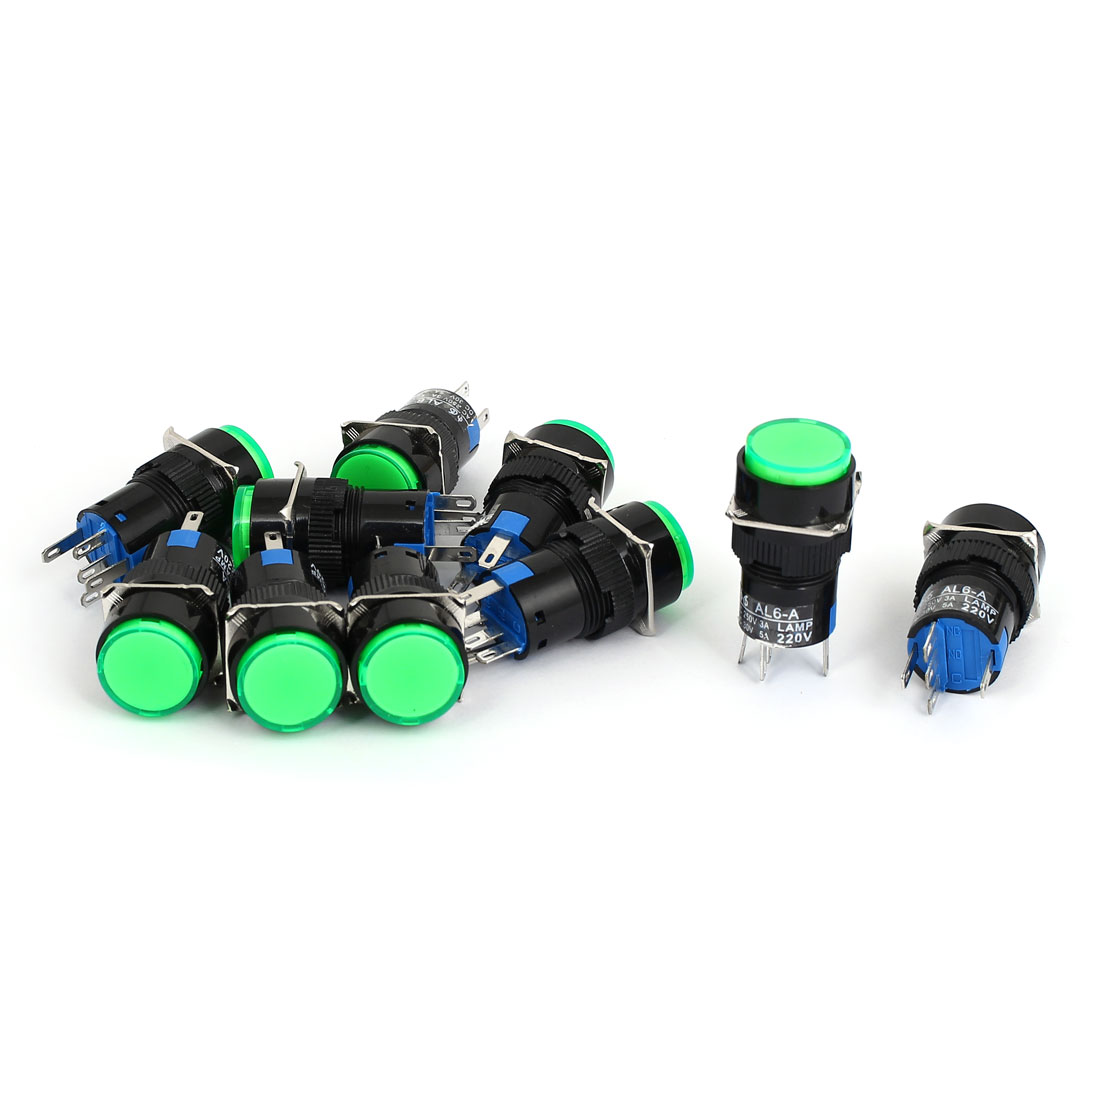 10pcs AL6-A DC24V Green Signal Mushroom Cap Locking Push Button Switch